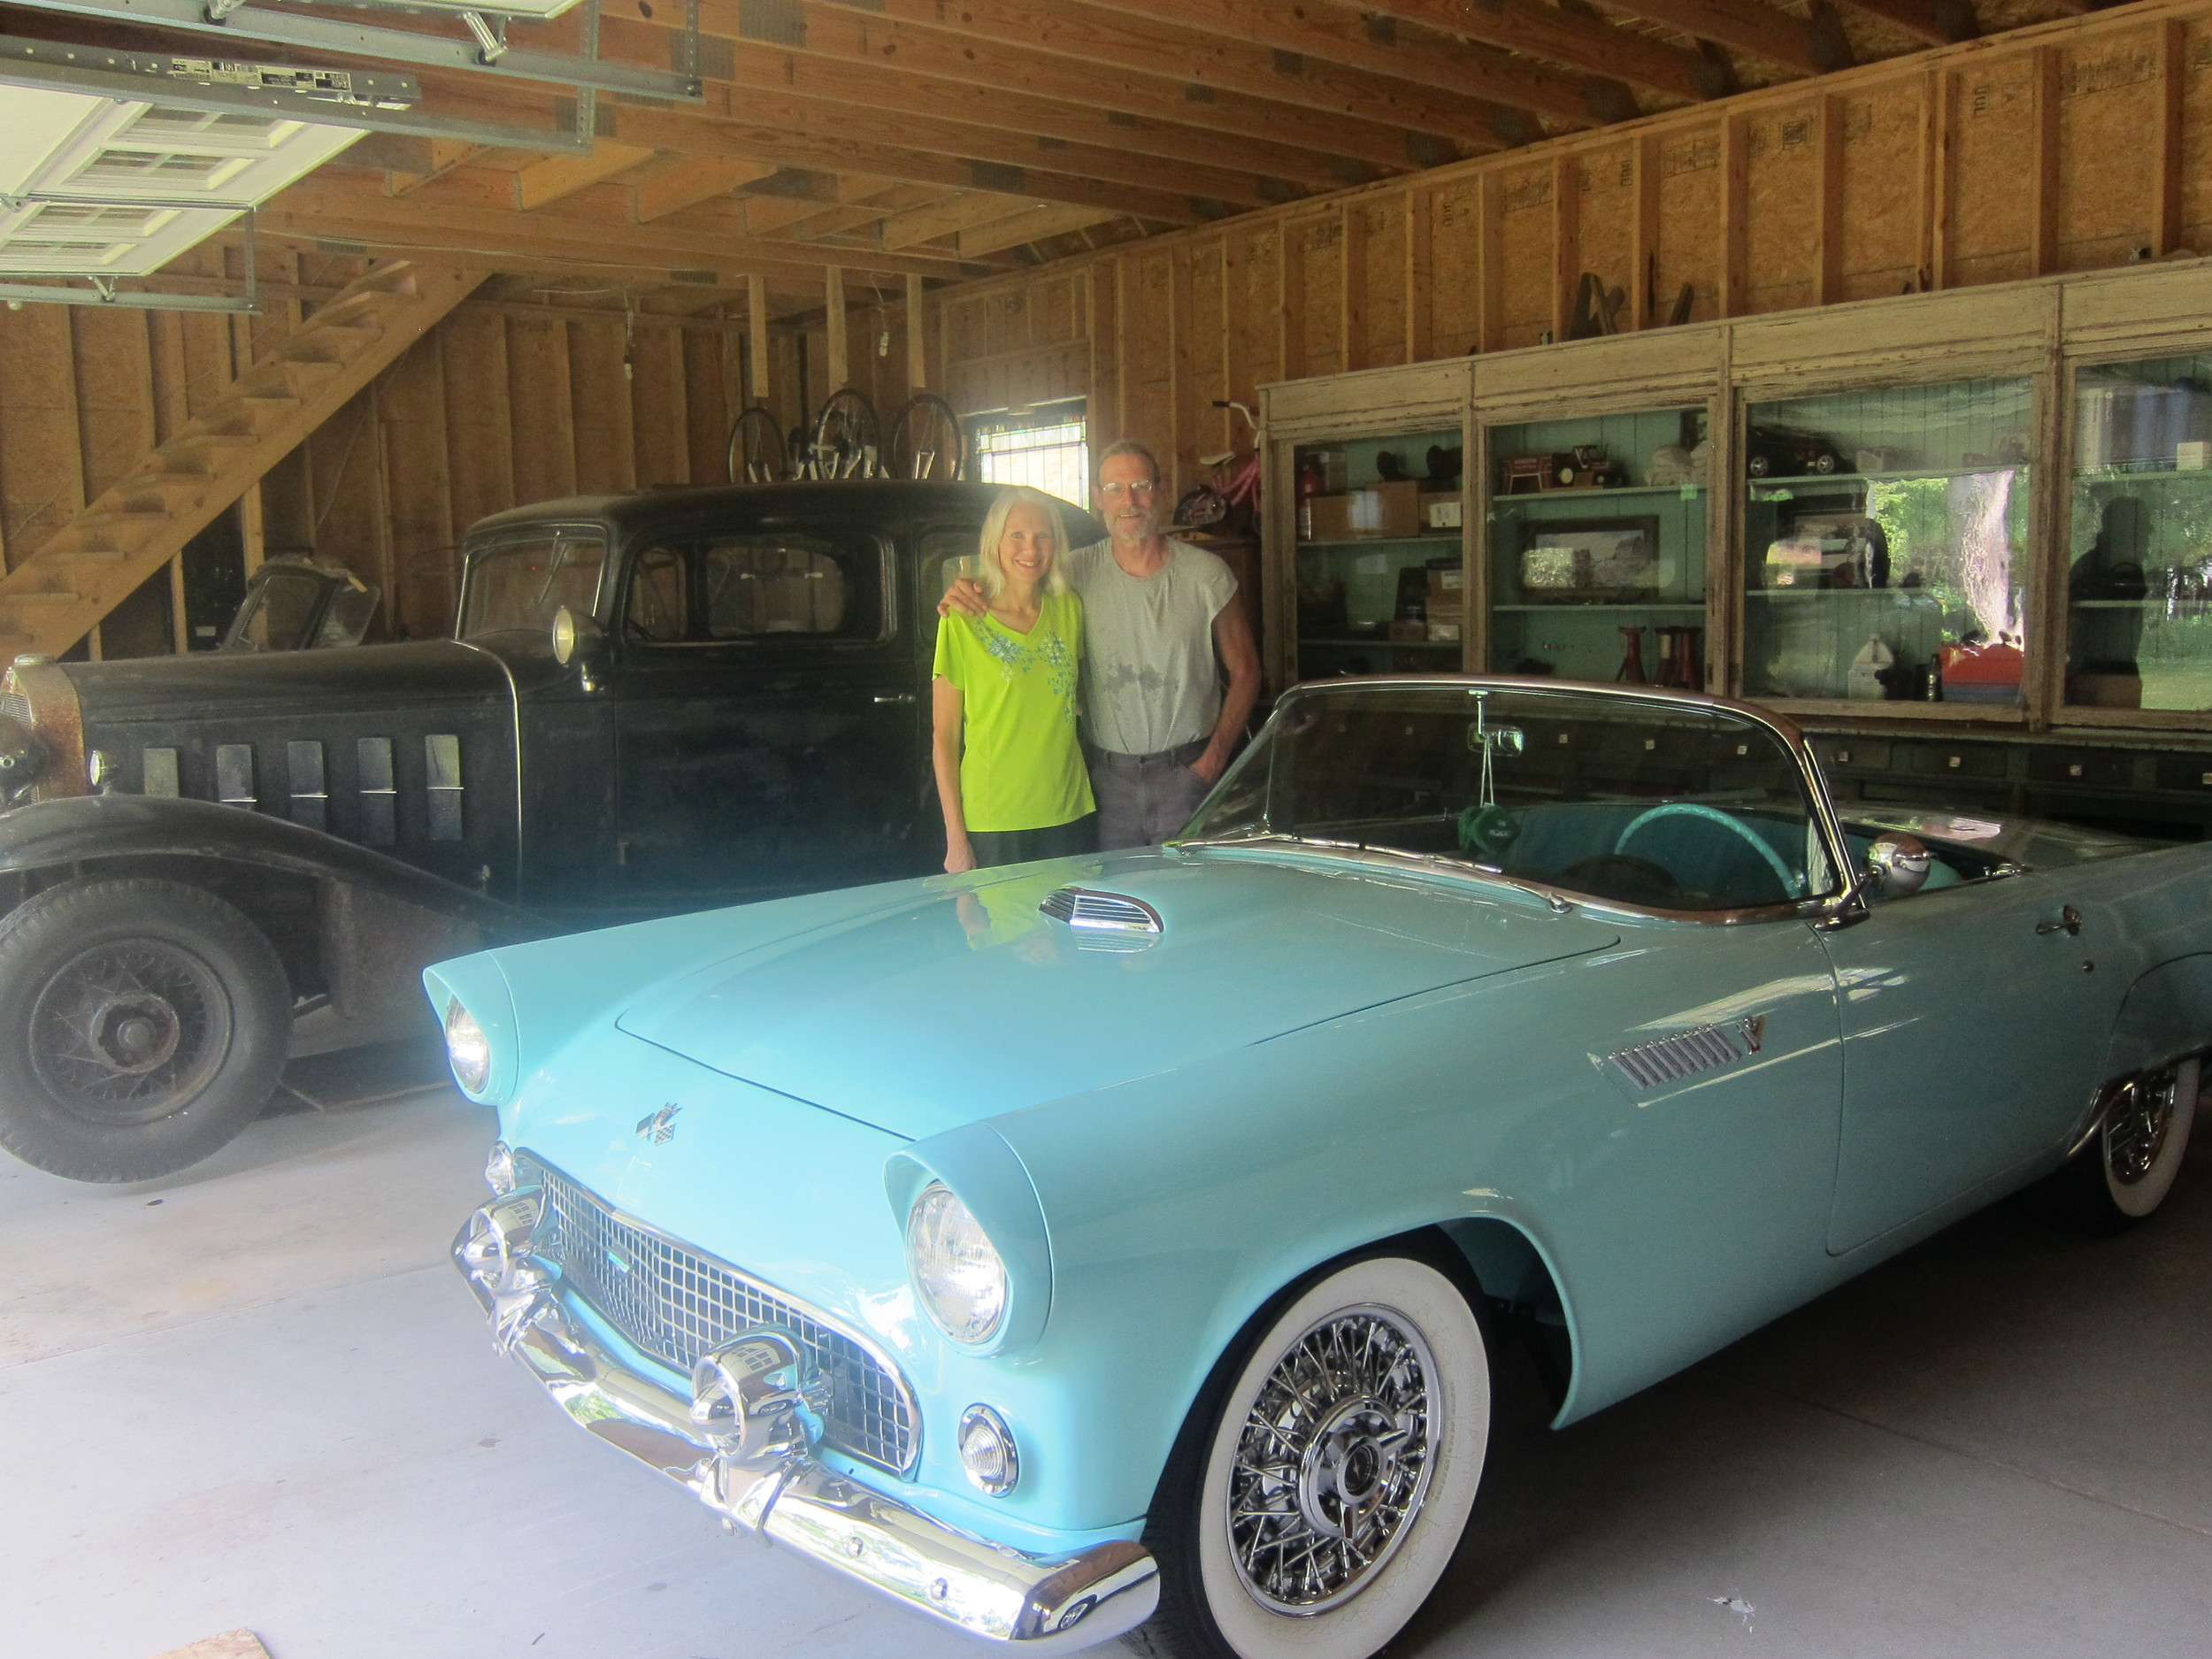 Pat and Pam! And their Thunderbird. (La Salle behind it)